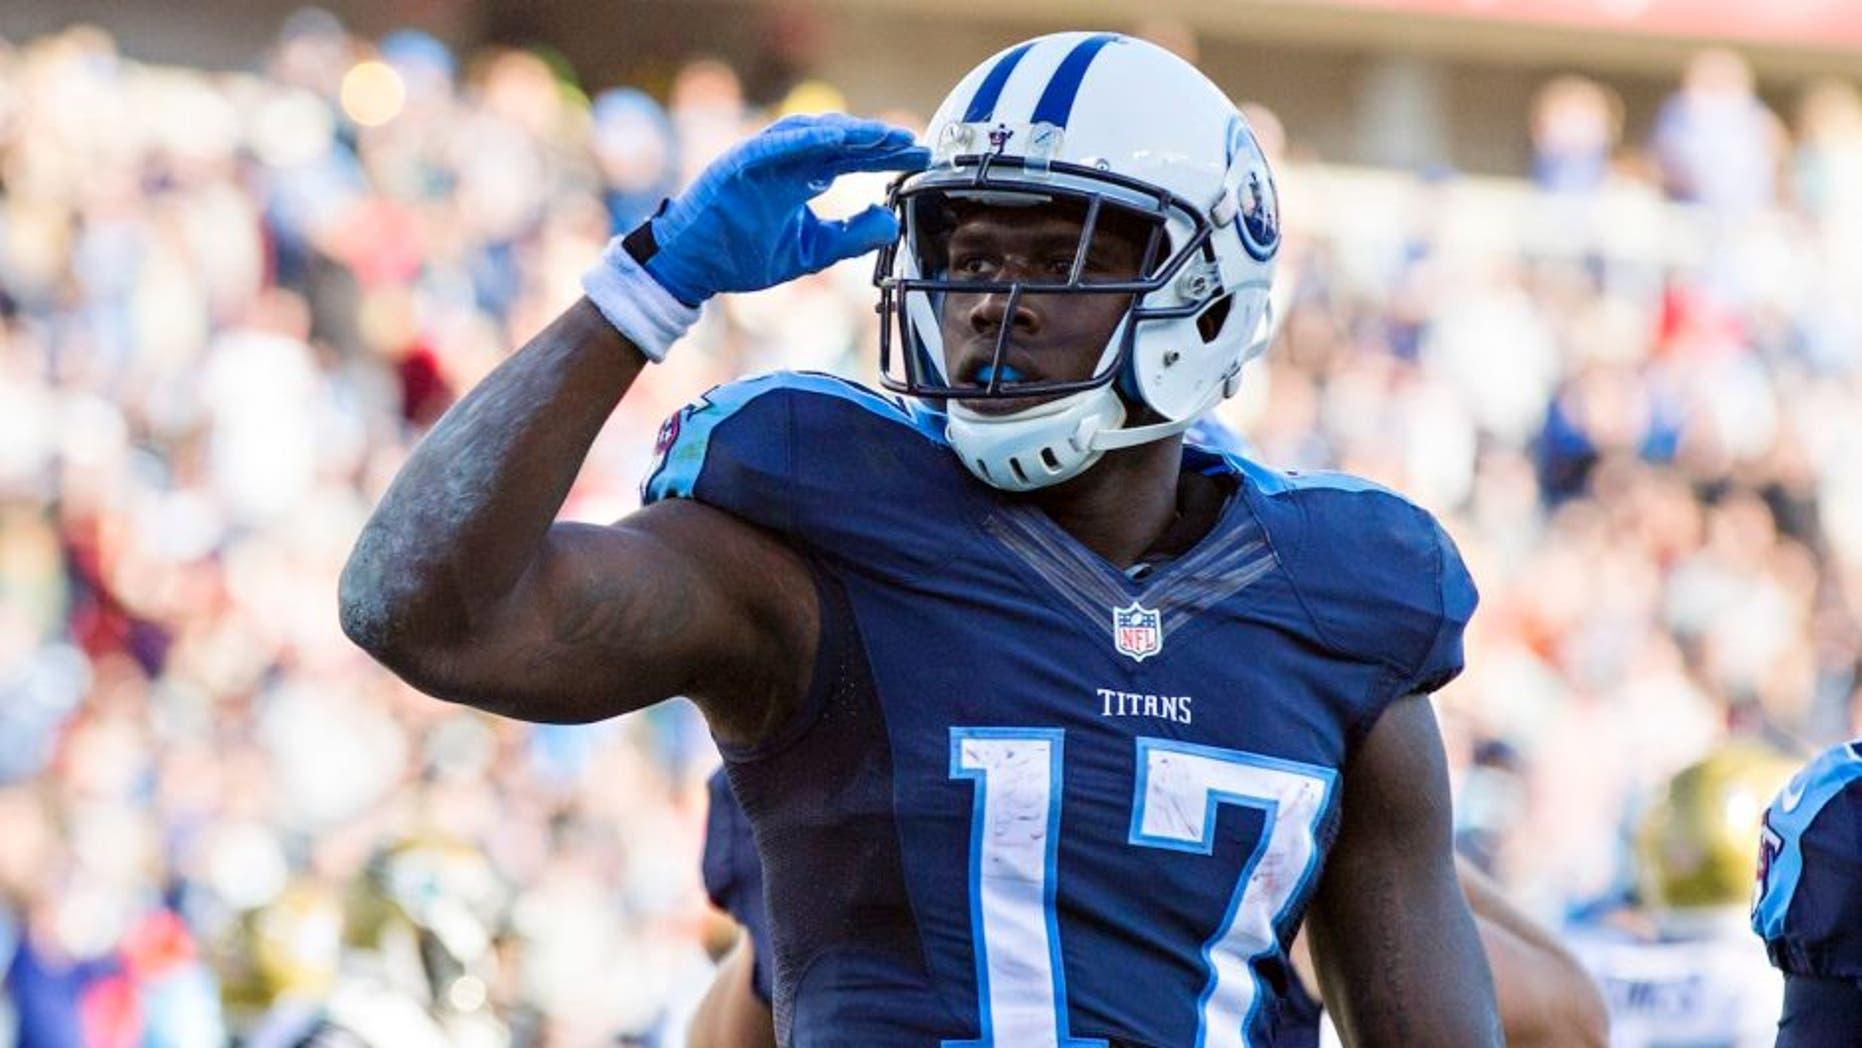 NASHVILLE, TN - DECEMBER 6: Dorial Green-Beckham #17 of the Tennessee Titans salutes the crowd after scoring a touchdown against the Jacksonville Jaguars at Nissan Stadium on December 6, 2015 in Nashville, Tennessee. The Titans defeated the Jaguars 42-39. (Photo by Wesley Hitt/Getty Images)